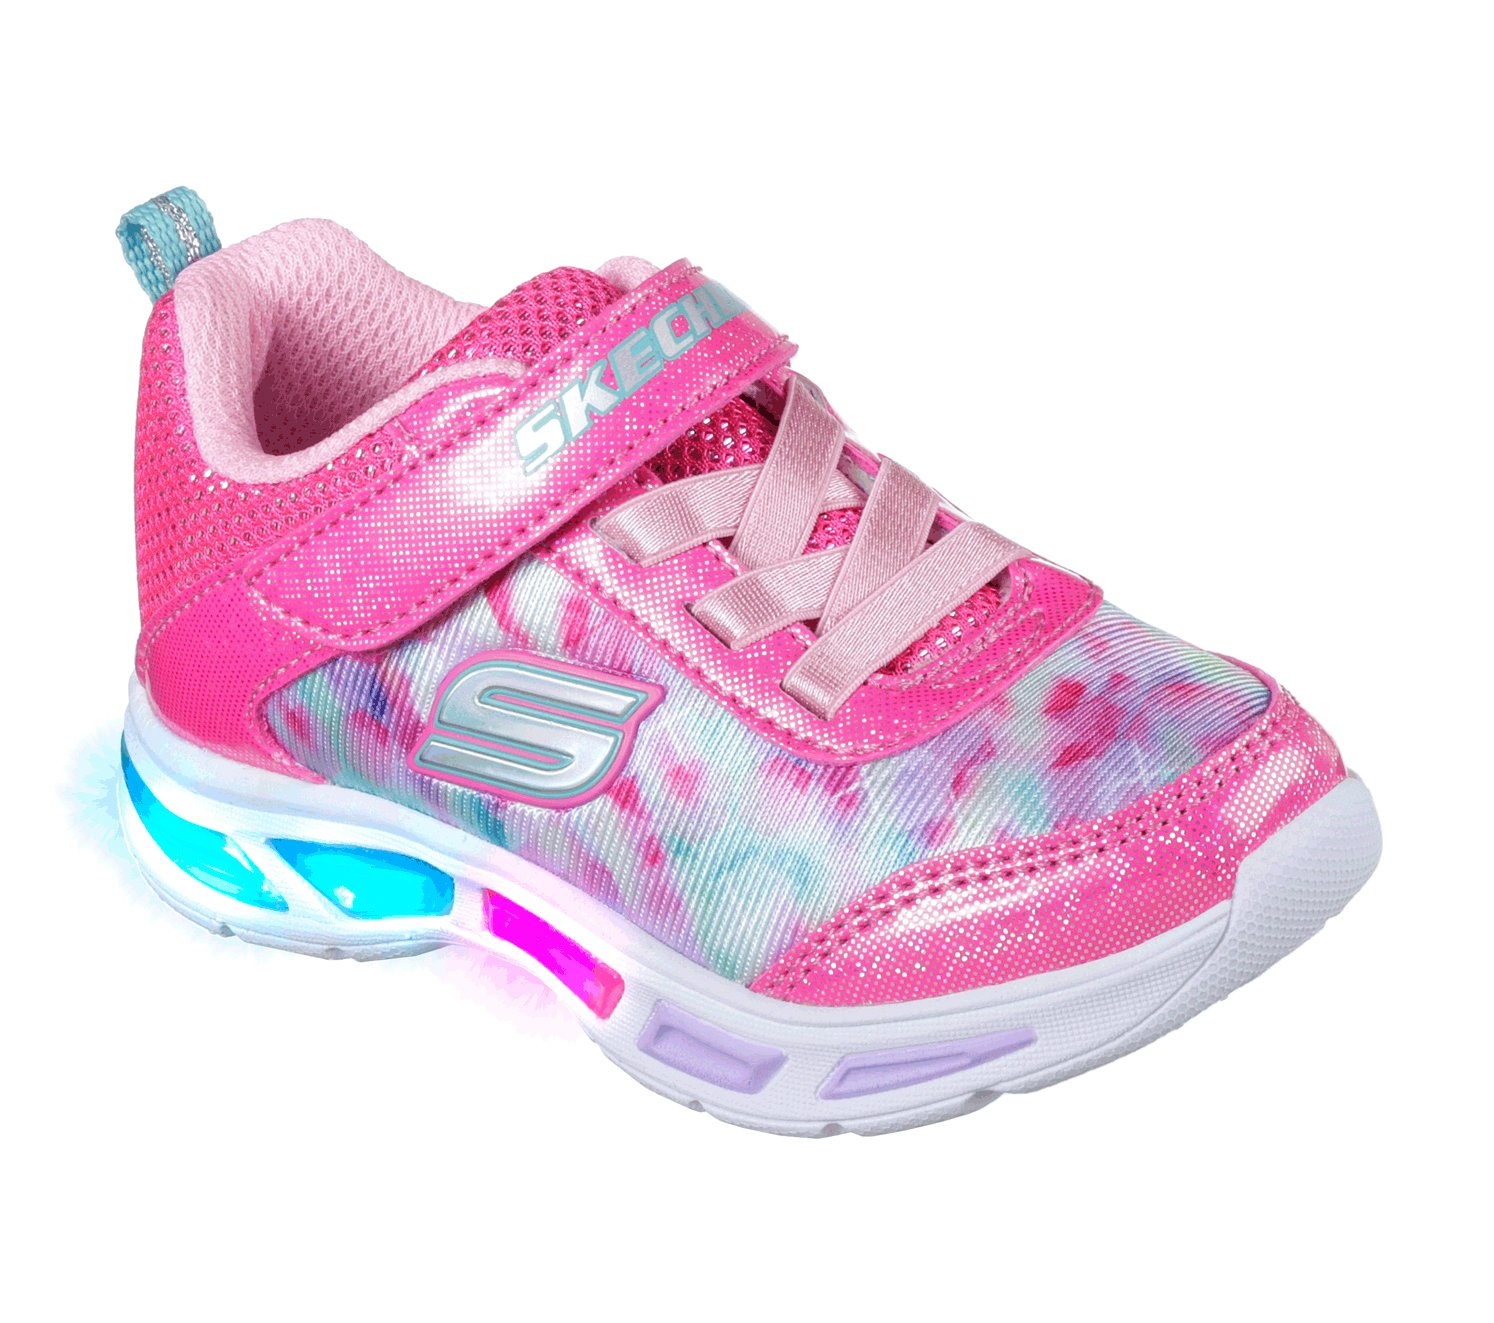 Skechers Kids Girls' Litebeams-Dance N'Glow Sneaker,neon Pink/Multi,1 Medium US Little Kid by Skechers